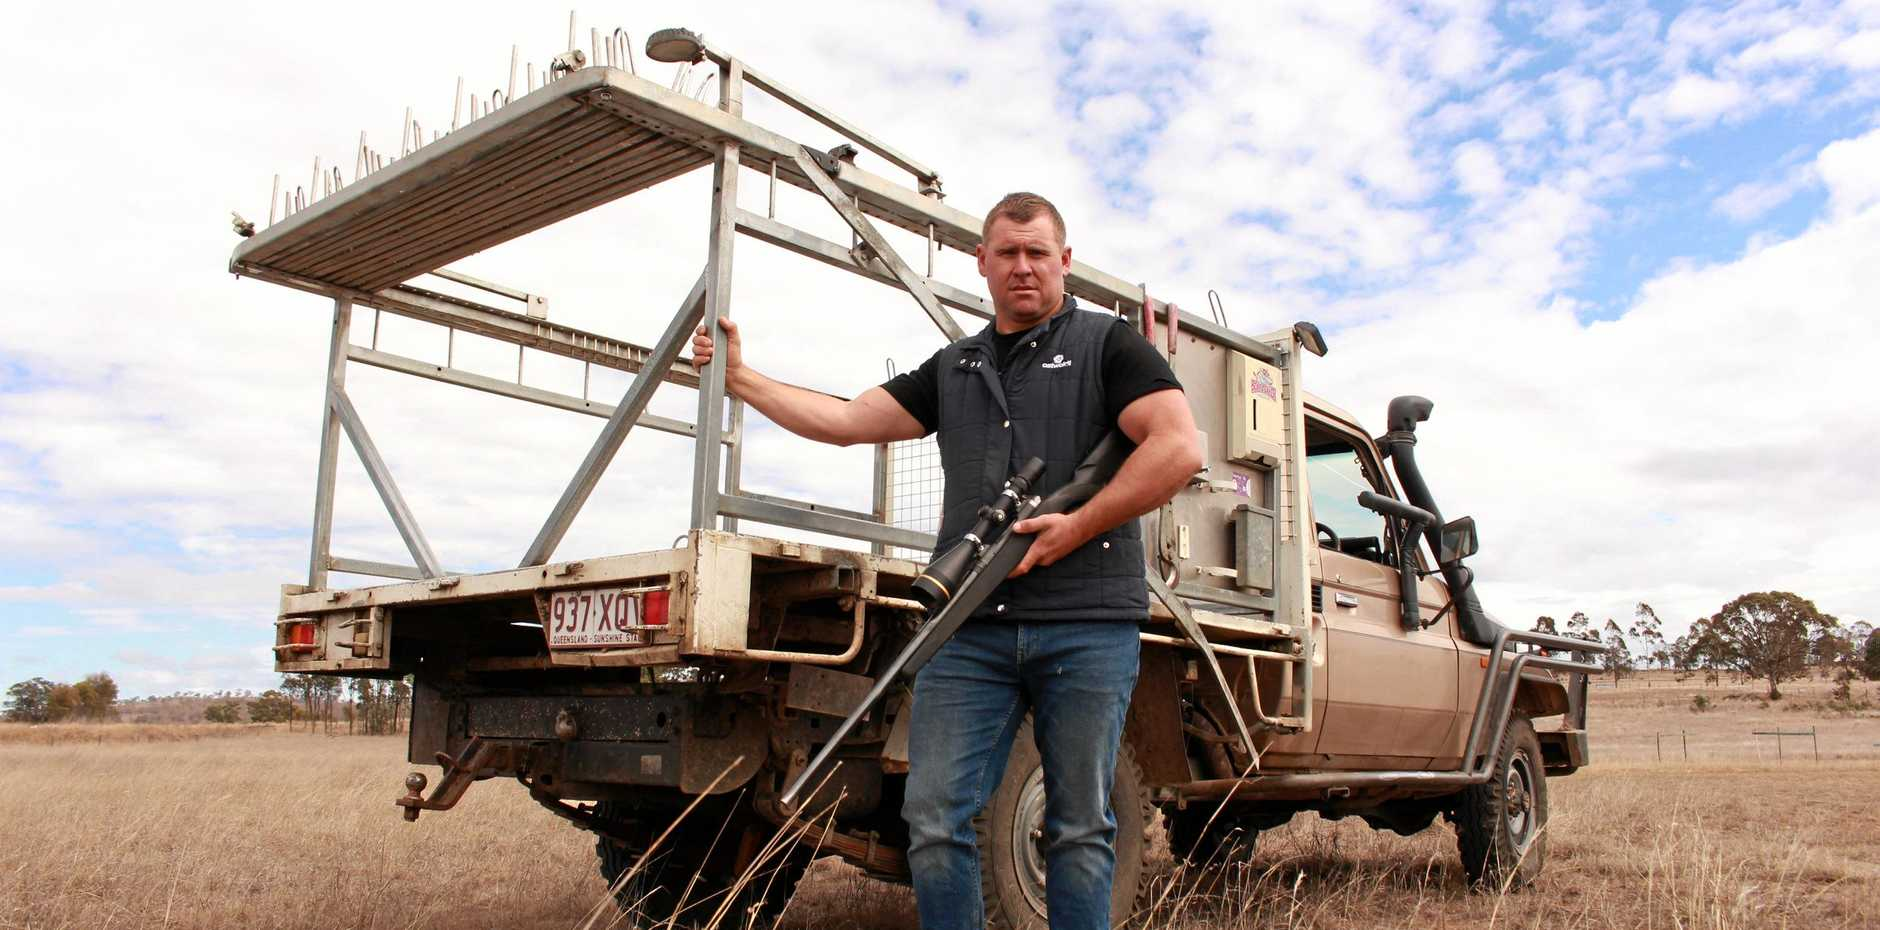 Kangaroo shooter Lucas Riley has been in discussions with Southern Downs Regional Council over getting approvals for semi-trailer access to his property on Warwick's outskirts.